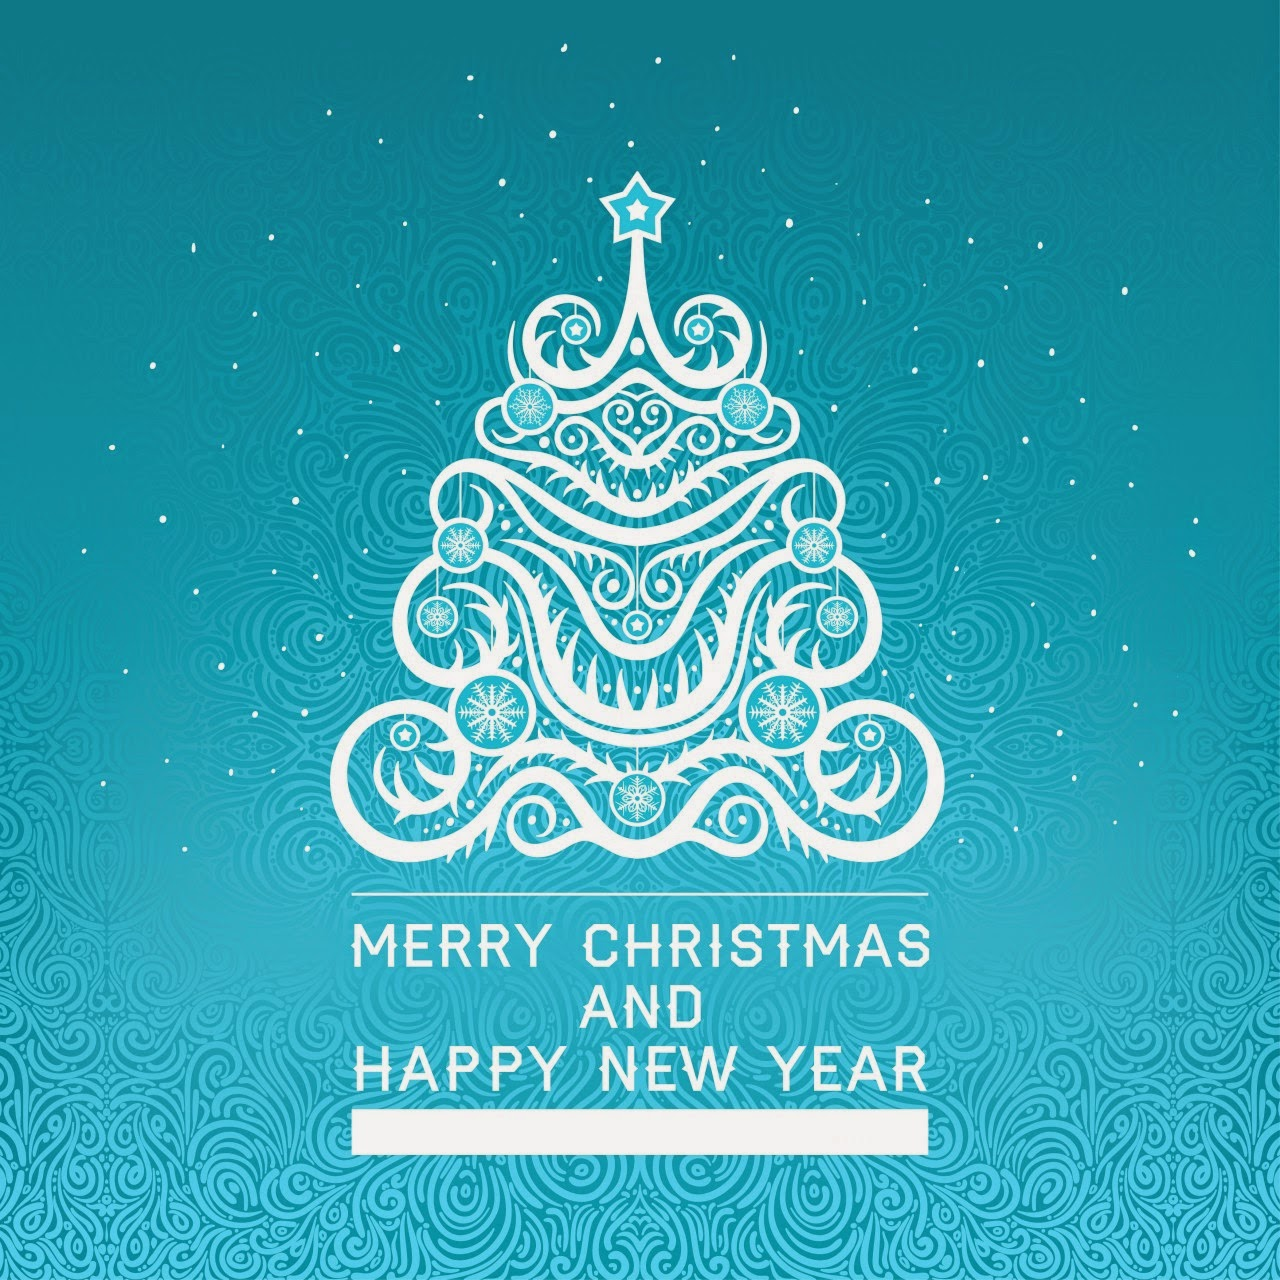 Merry-Christmas-and-happy-new-year-cyan-background-vector-image.jpg